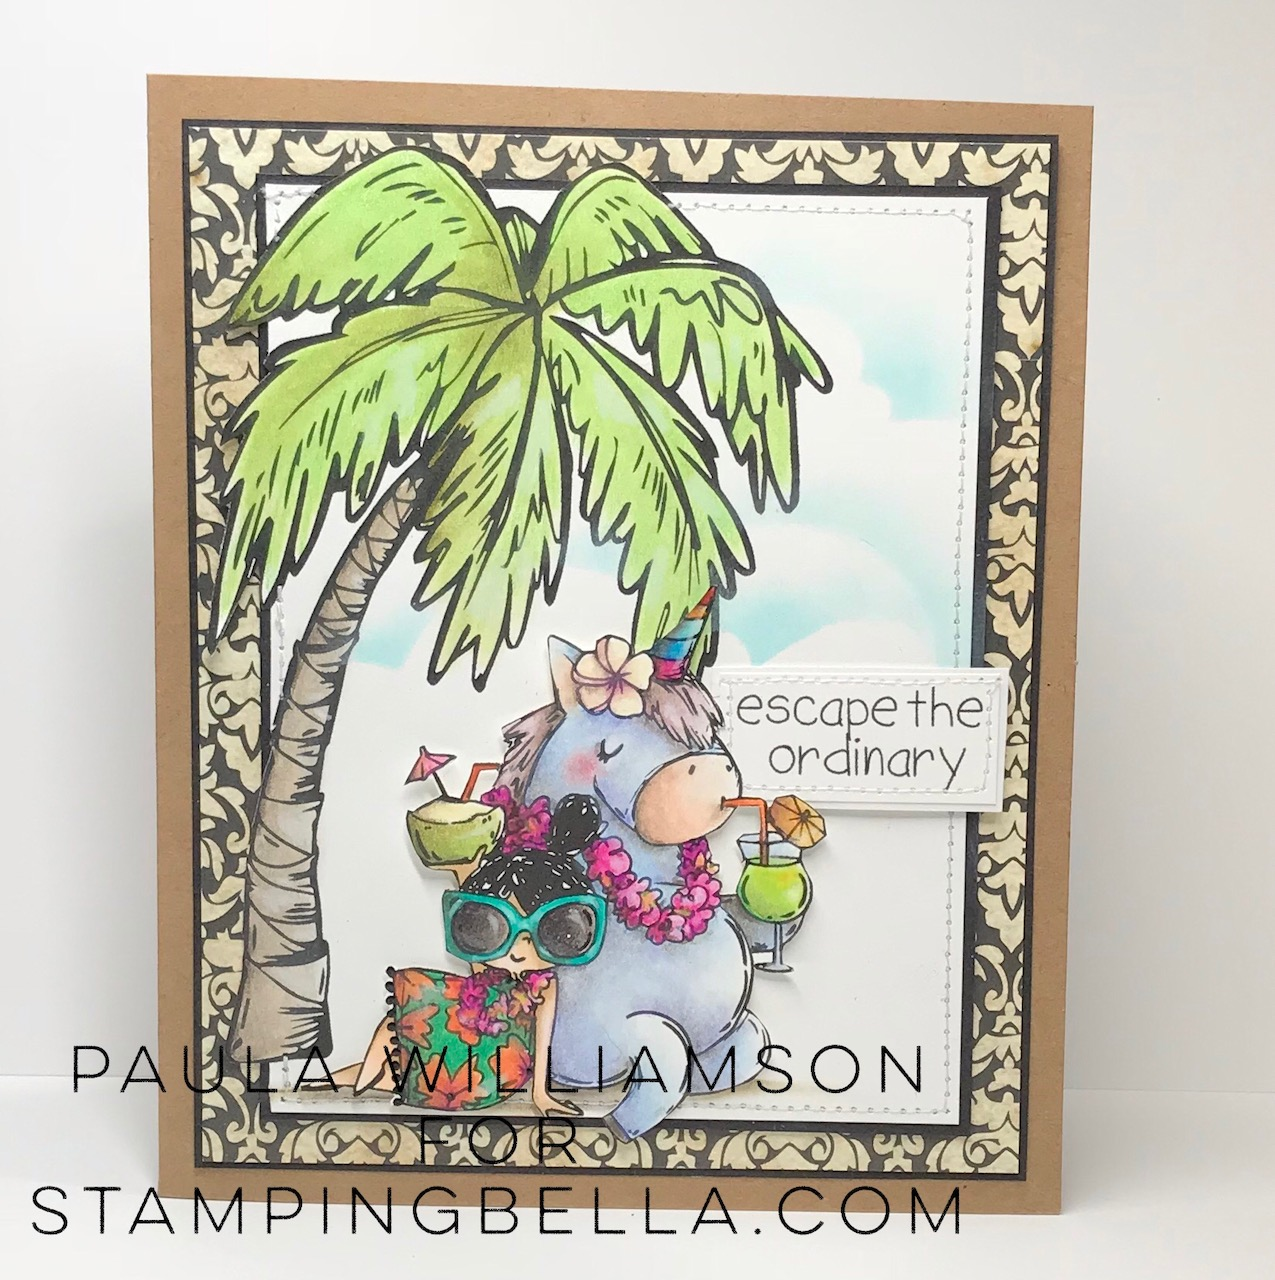 www.stampingbella.com: Rubber stamps used: Rosie and Bernie in Hawaii, Rosie and Bernie's PALM TREE, and our Adventure Sentiment Set CARD BY Paula Williamson